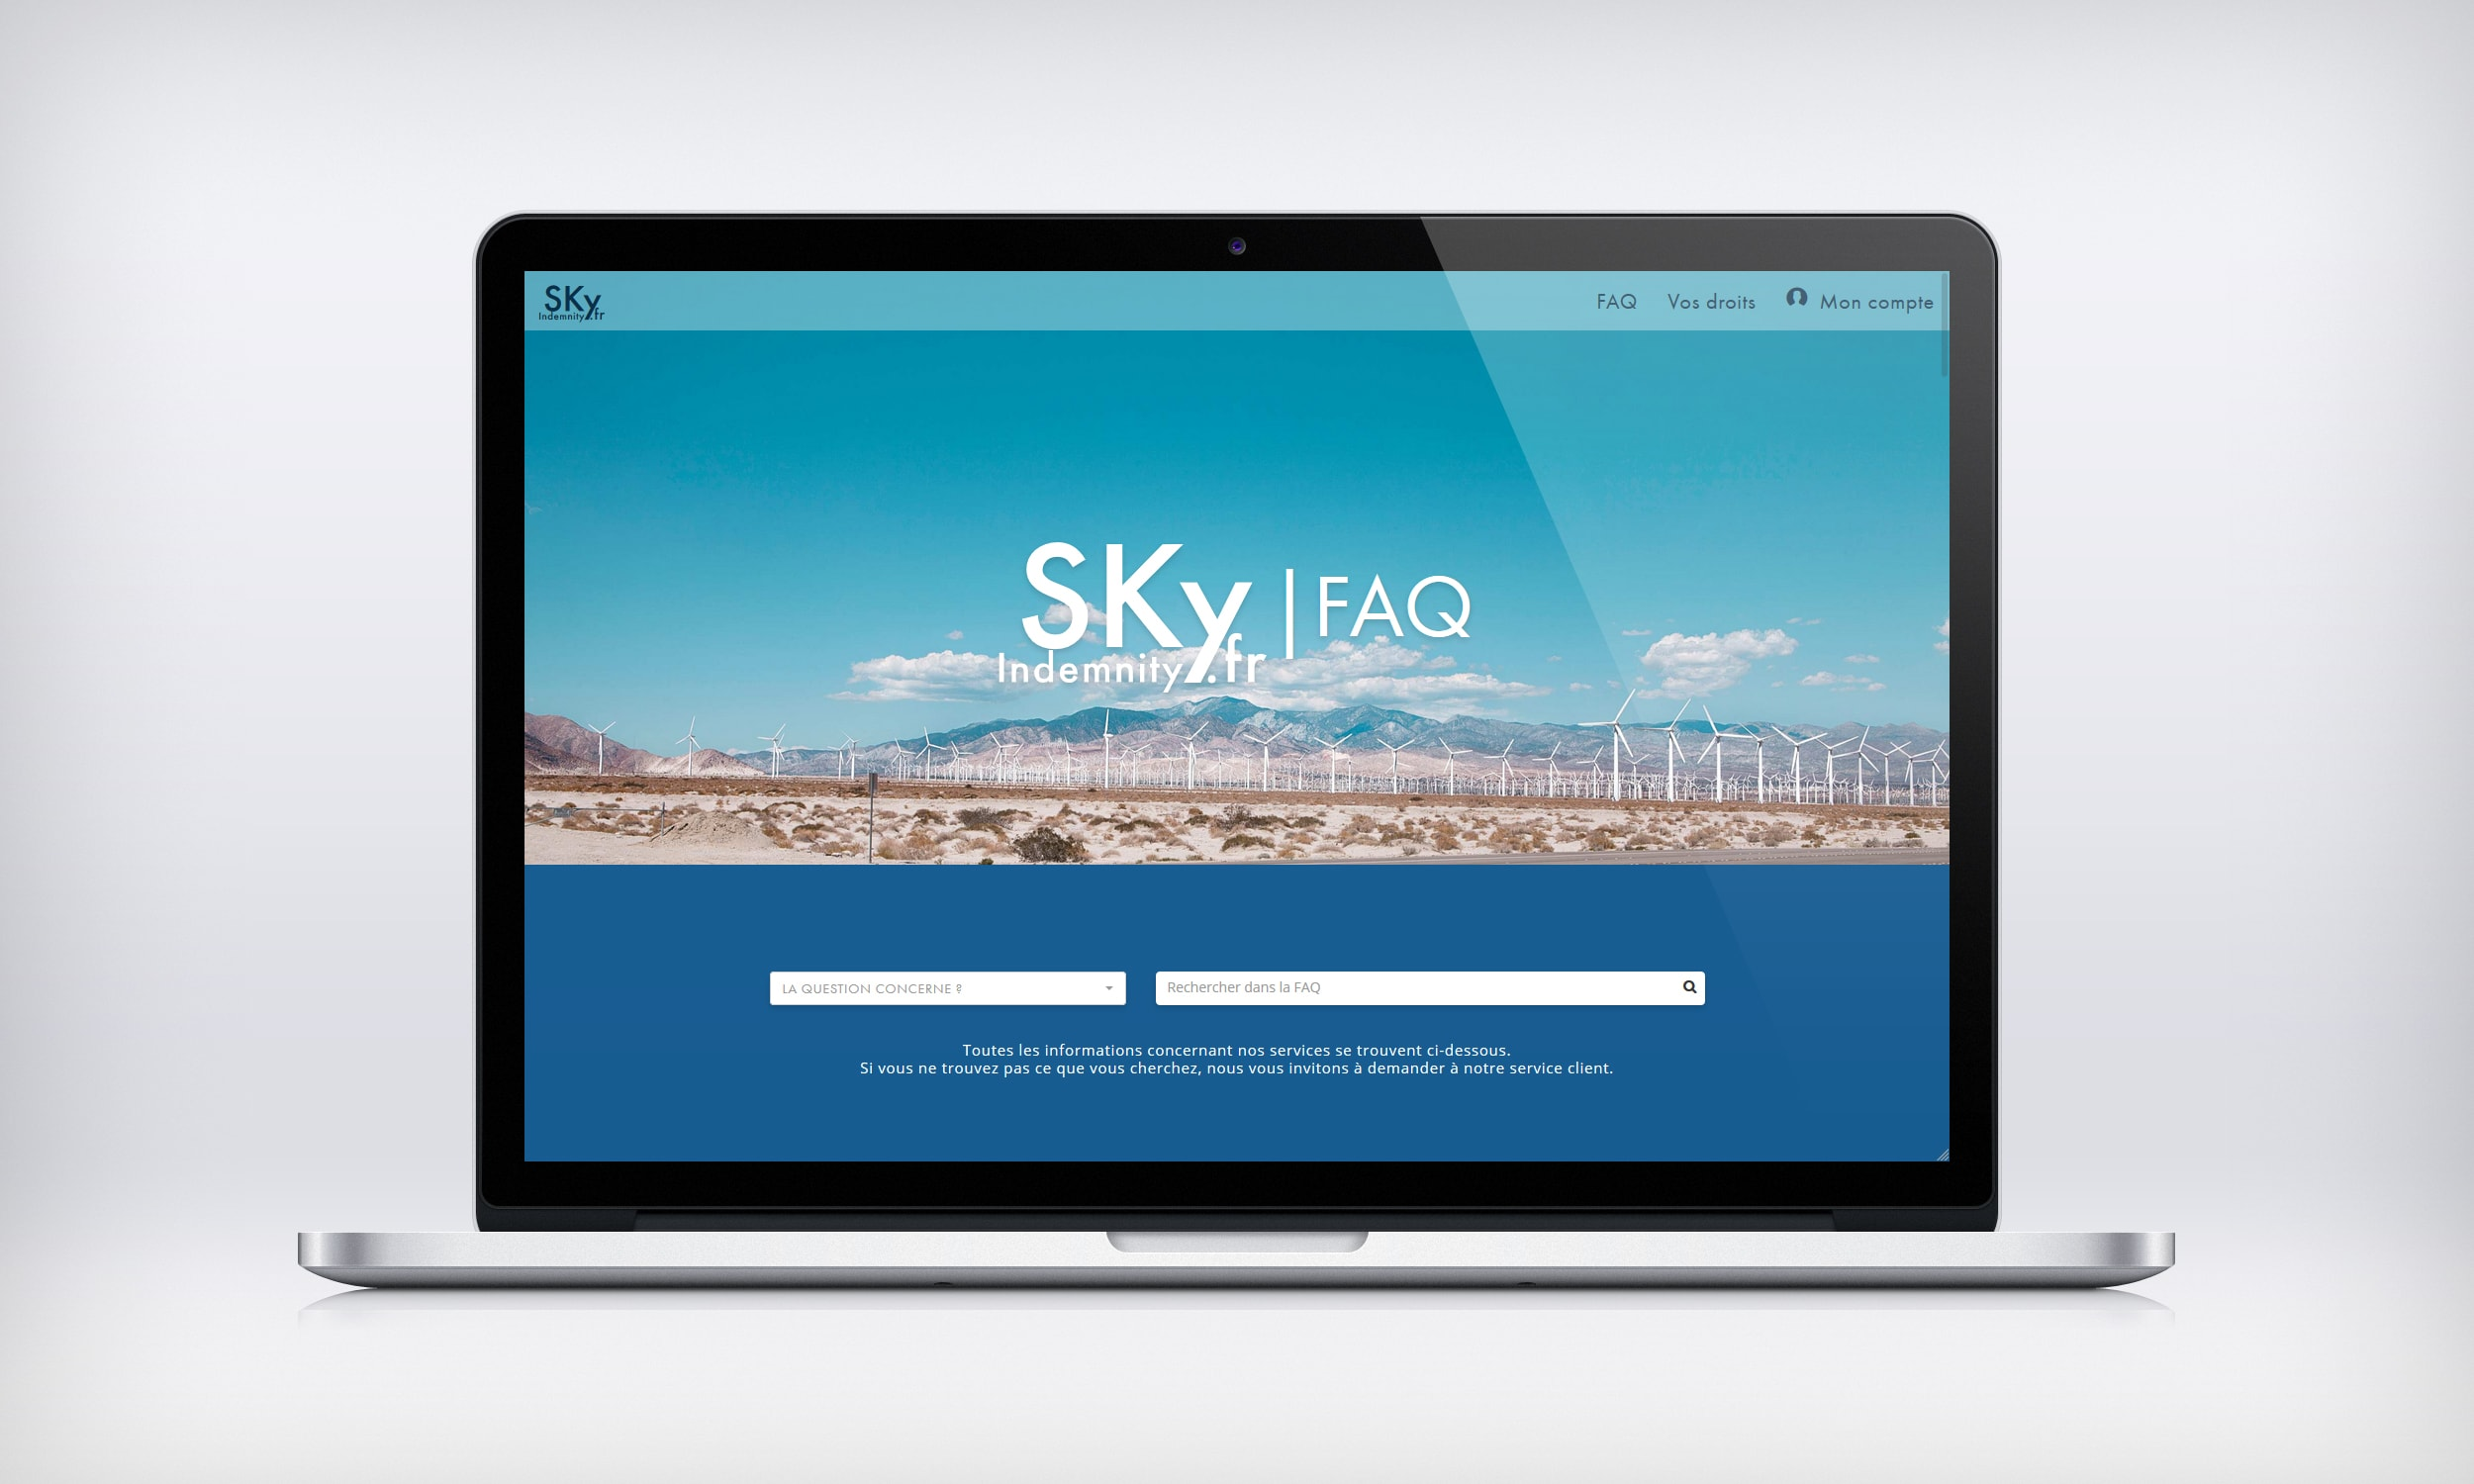 Sky indemnity faq